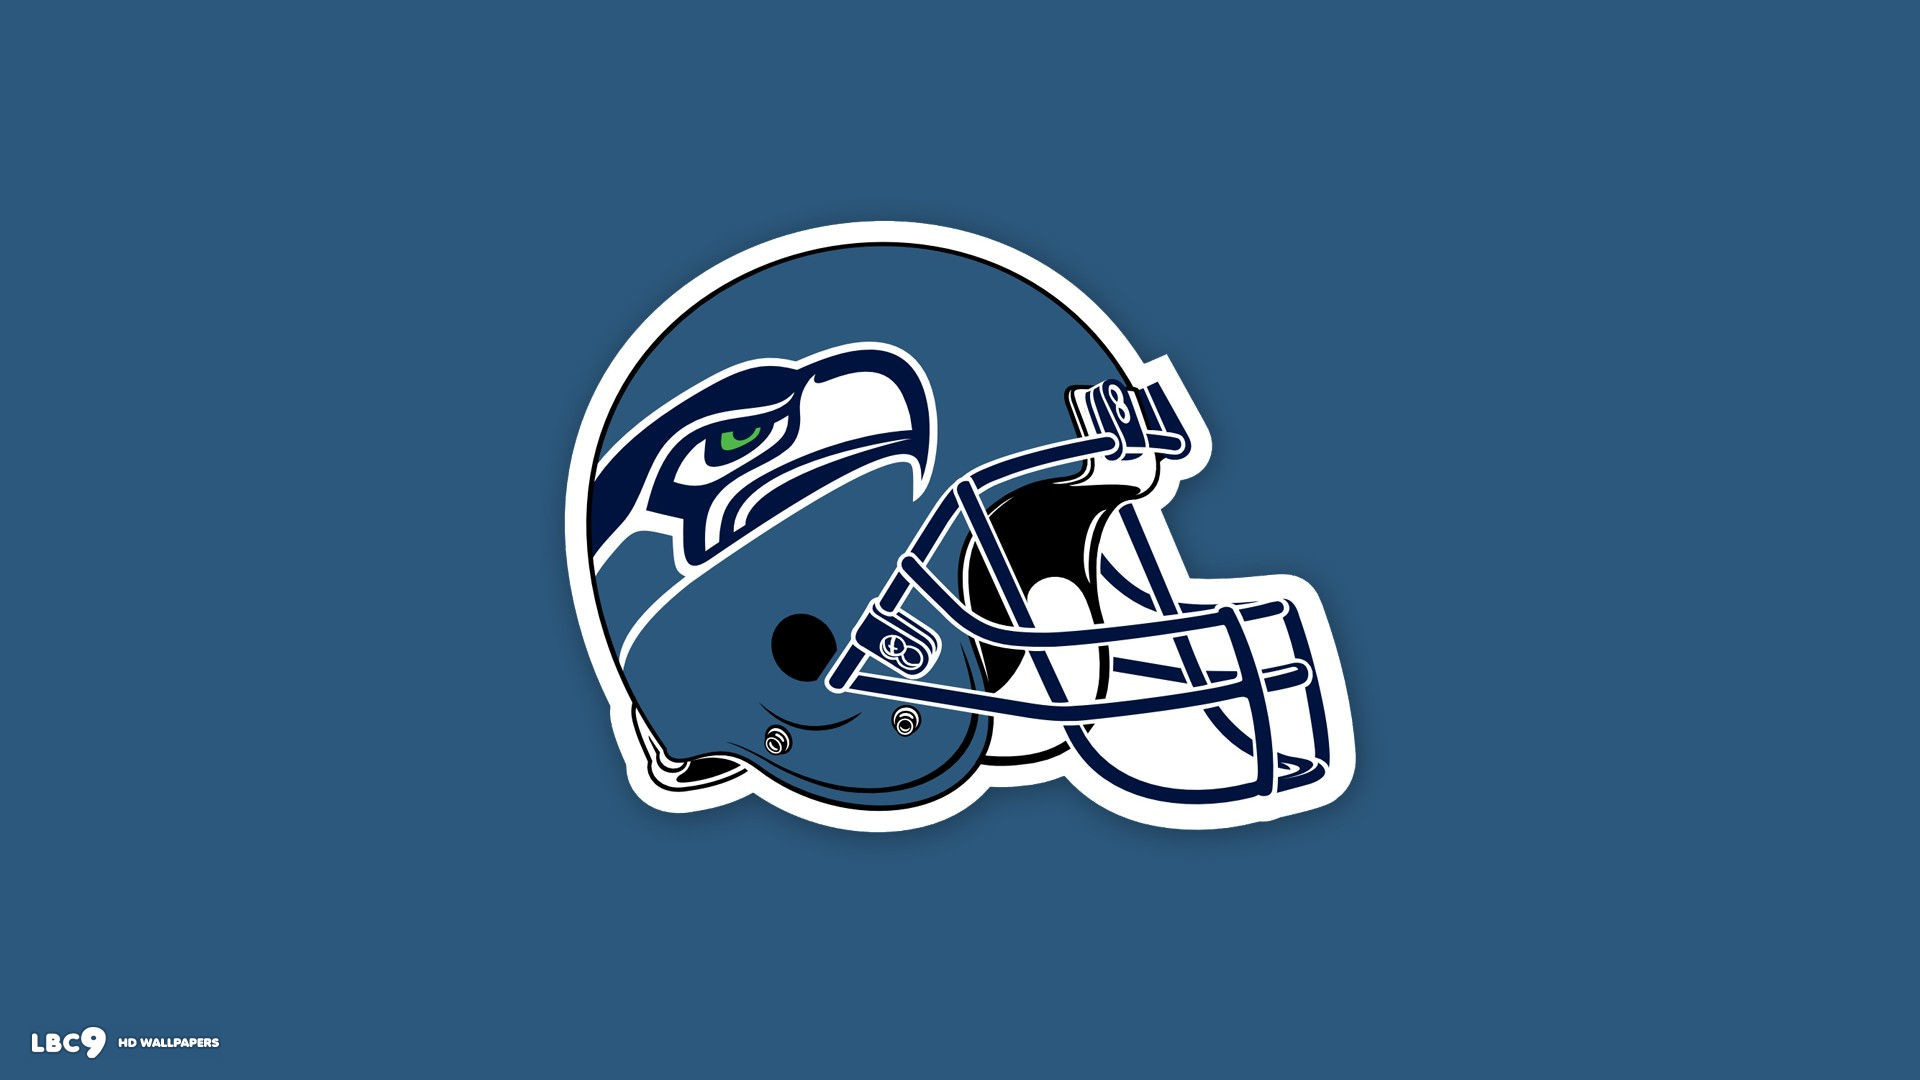 Seahawks Wallpapers 1920x1080 (80+ images)